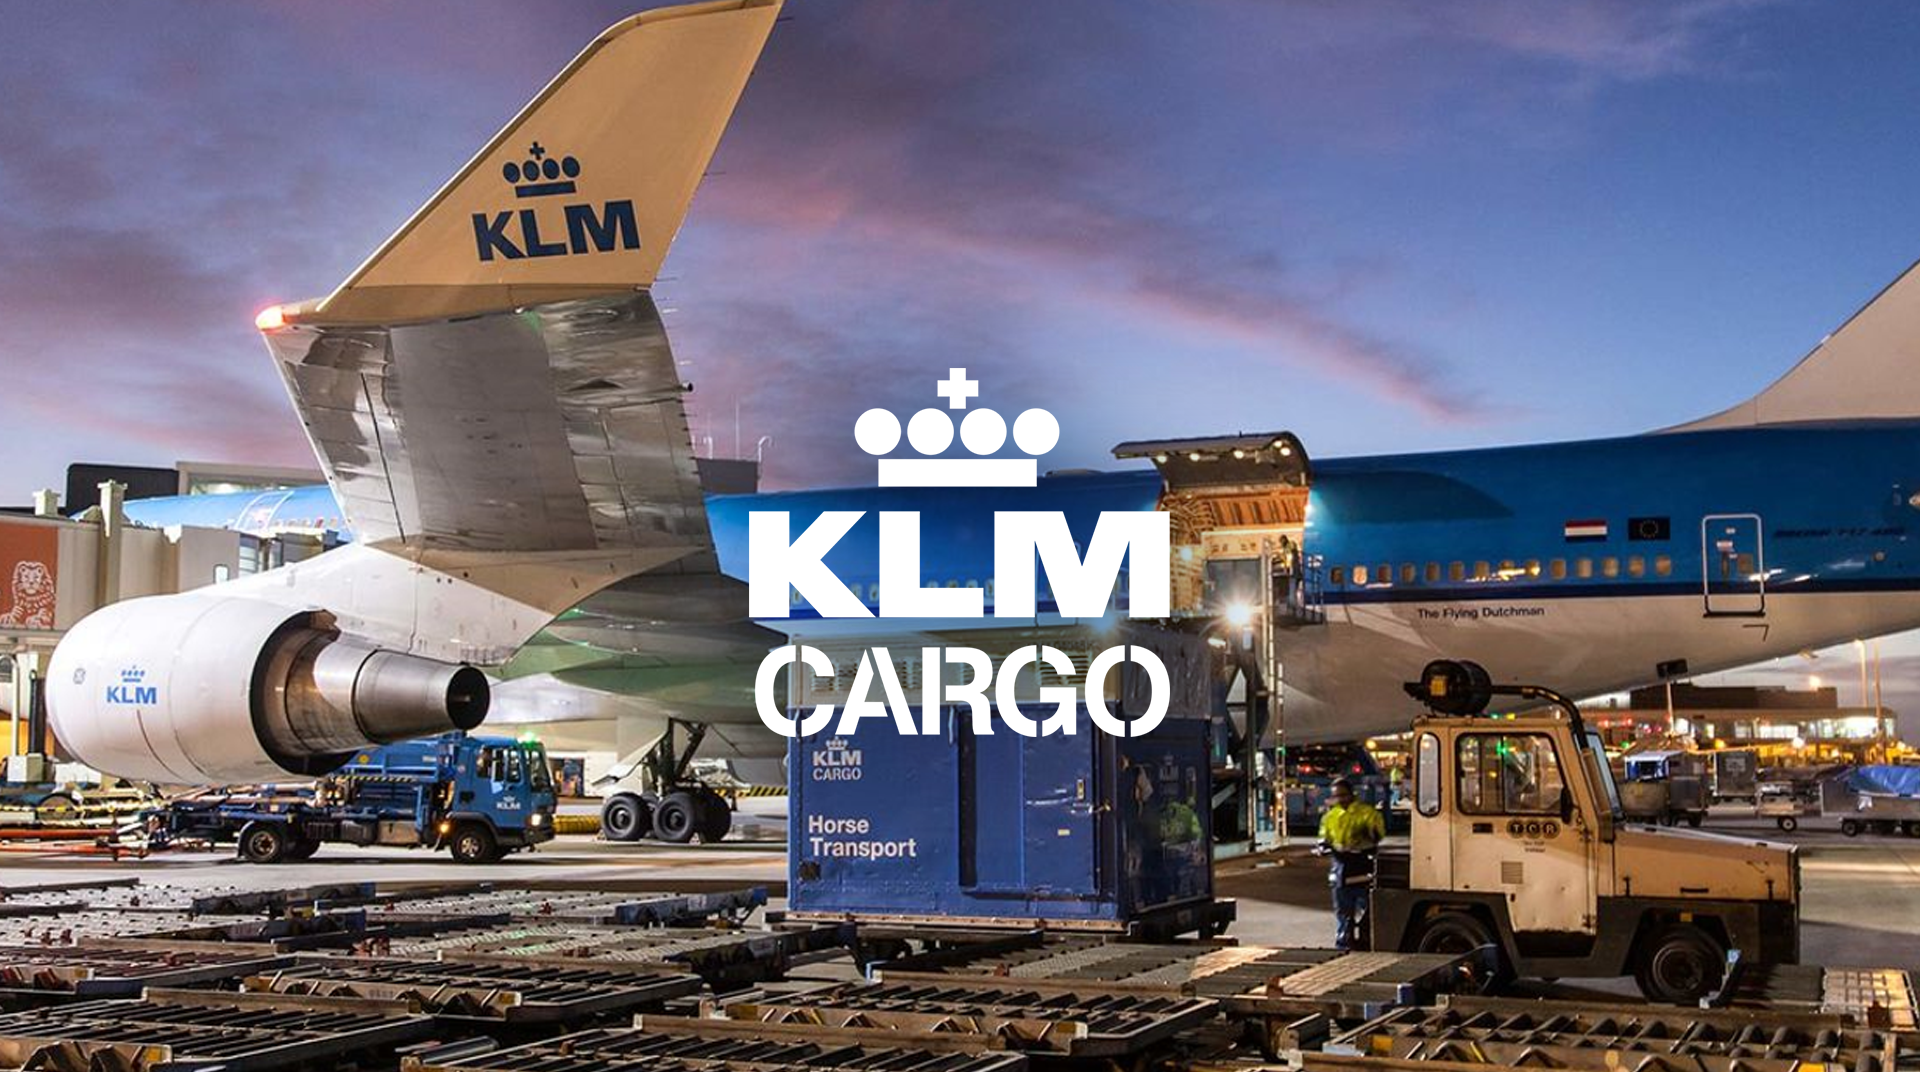 KLM Cargo - User experience en service design voor een optimale customer experience in de luchtvaart